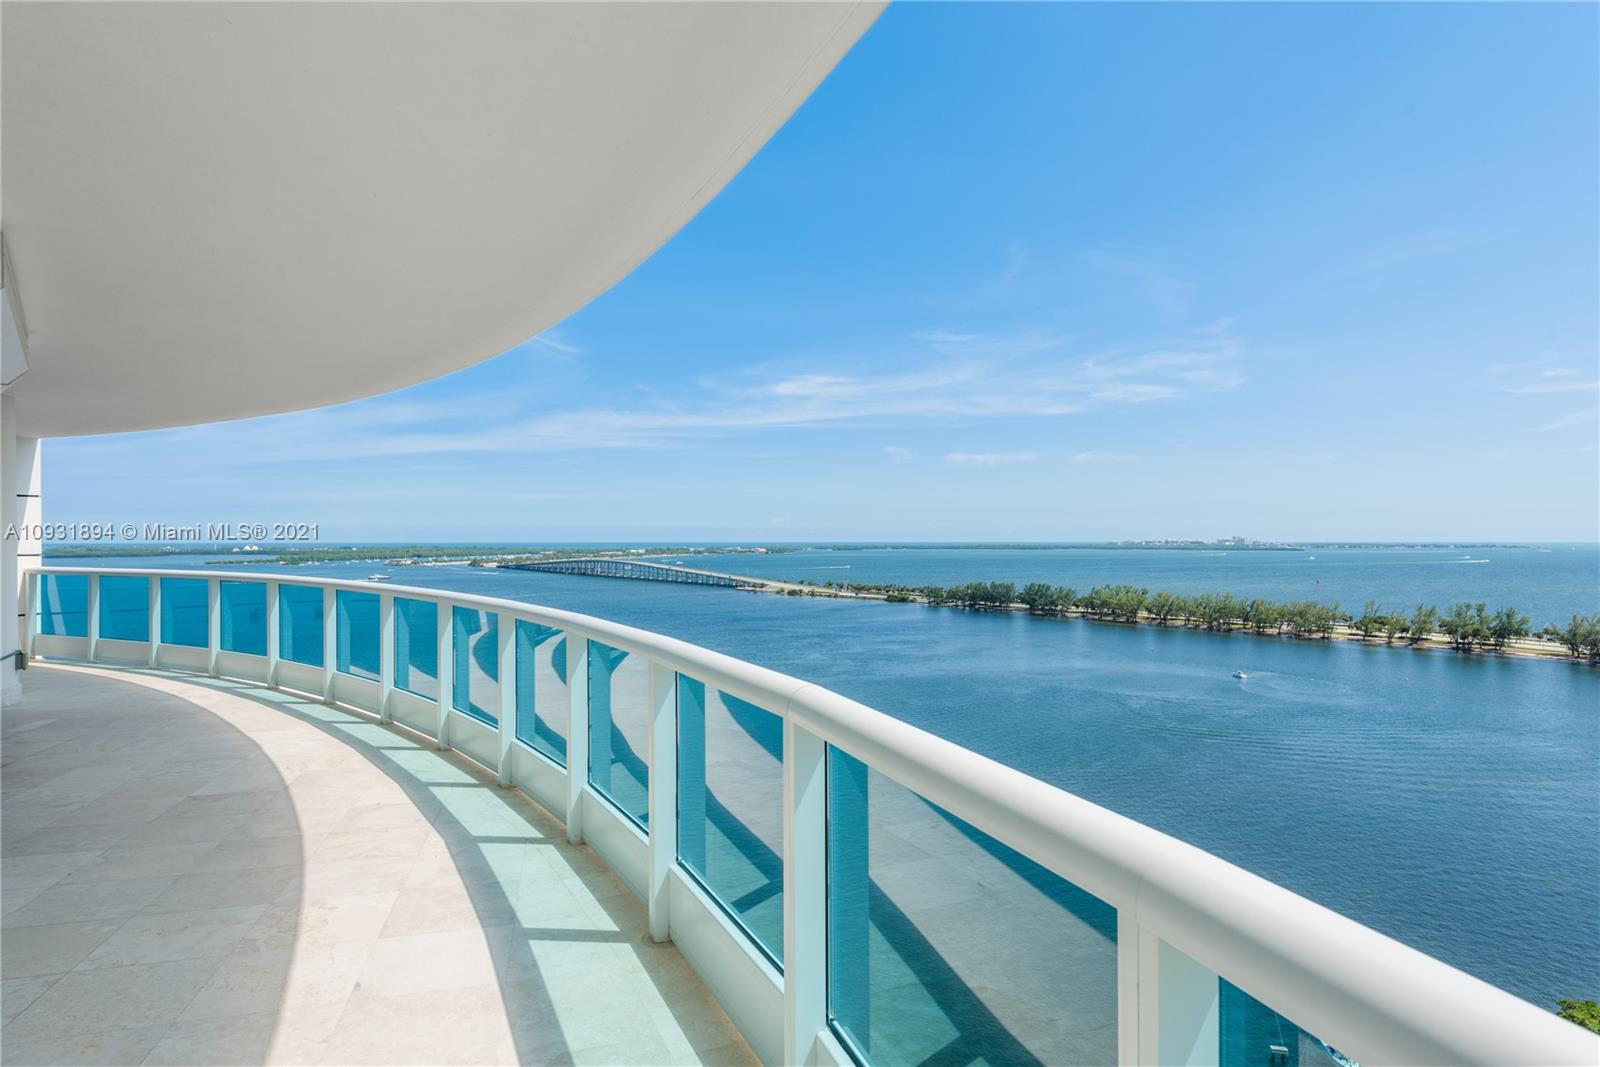 Situated at the prestigious, full-service, white-glove Bristol Tower, this spectacular 5,890 SF combined two unit  light-filled residence is a palace in the sky! The epitome of elegant bay front living on the desirable, quiet, tree-lined south side of Brickell. Residence 2401 &2402 boasts 6 beds, 5.5 baths,private elevator/entry foyer & exceptional 270 degree city/bay views from the astonishing 1,300 SF wraparound terrace. 3 assigned covered parking +unlimited valet parking & 2 storage units. Fantastic for entertaining.Total SF of apt including living & terraces is 7,190 SF. Amenities include Tennis, Gym, Kids Play Area, Swimming Pool, Gym/Spa, 24hr Doorman Security, & more. Located In The Heart of Brickell,close to Dining & Nightlife. Walk to the best Brickell has to offer.FULLY FURNISHED